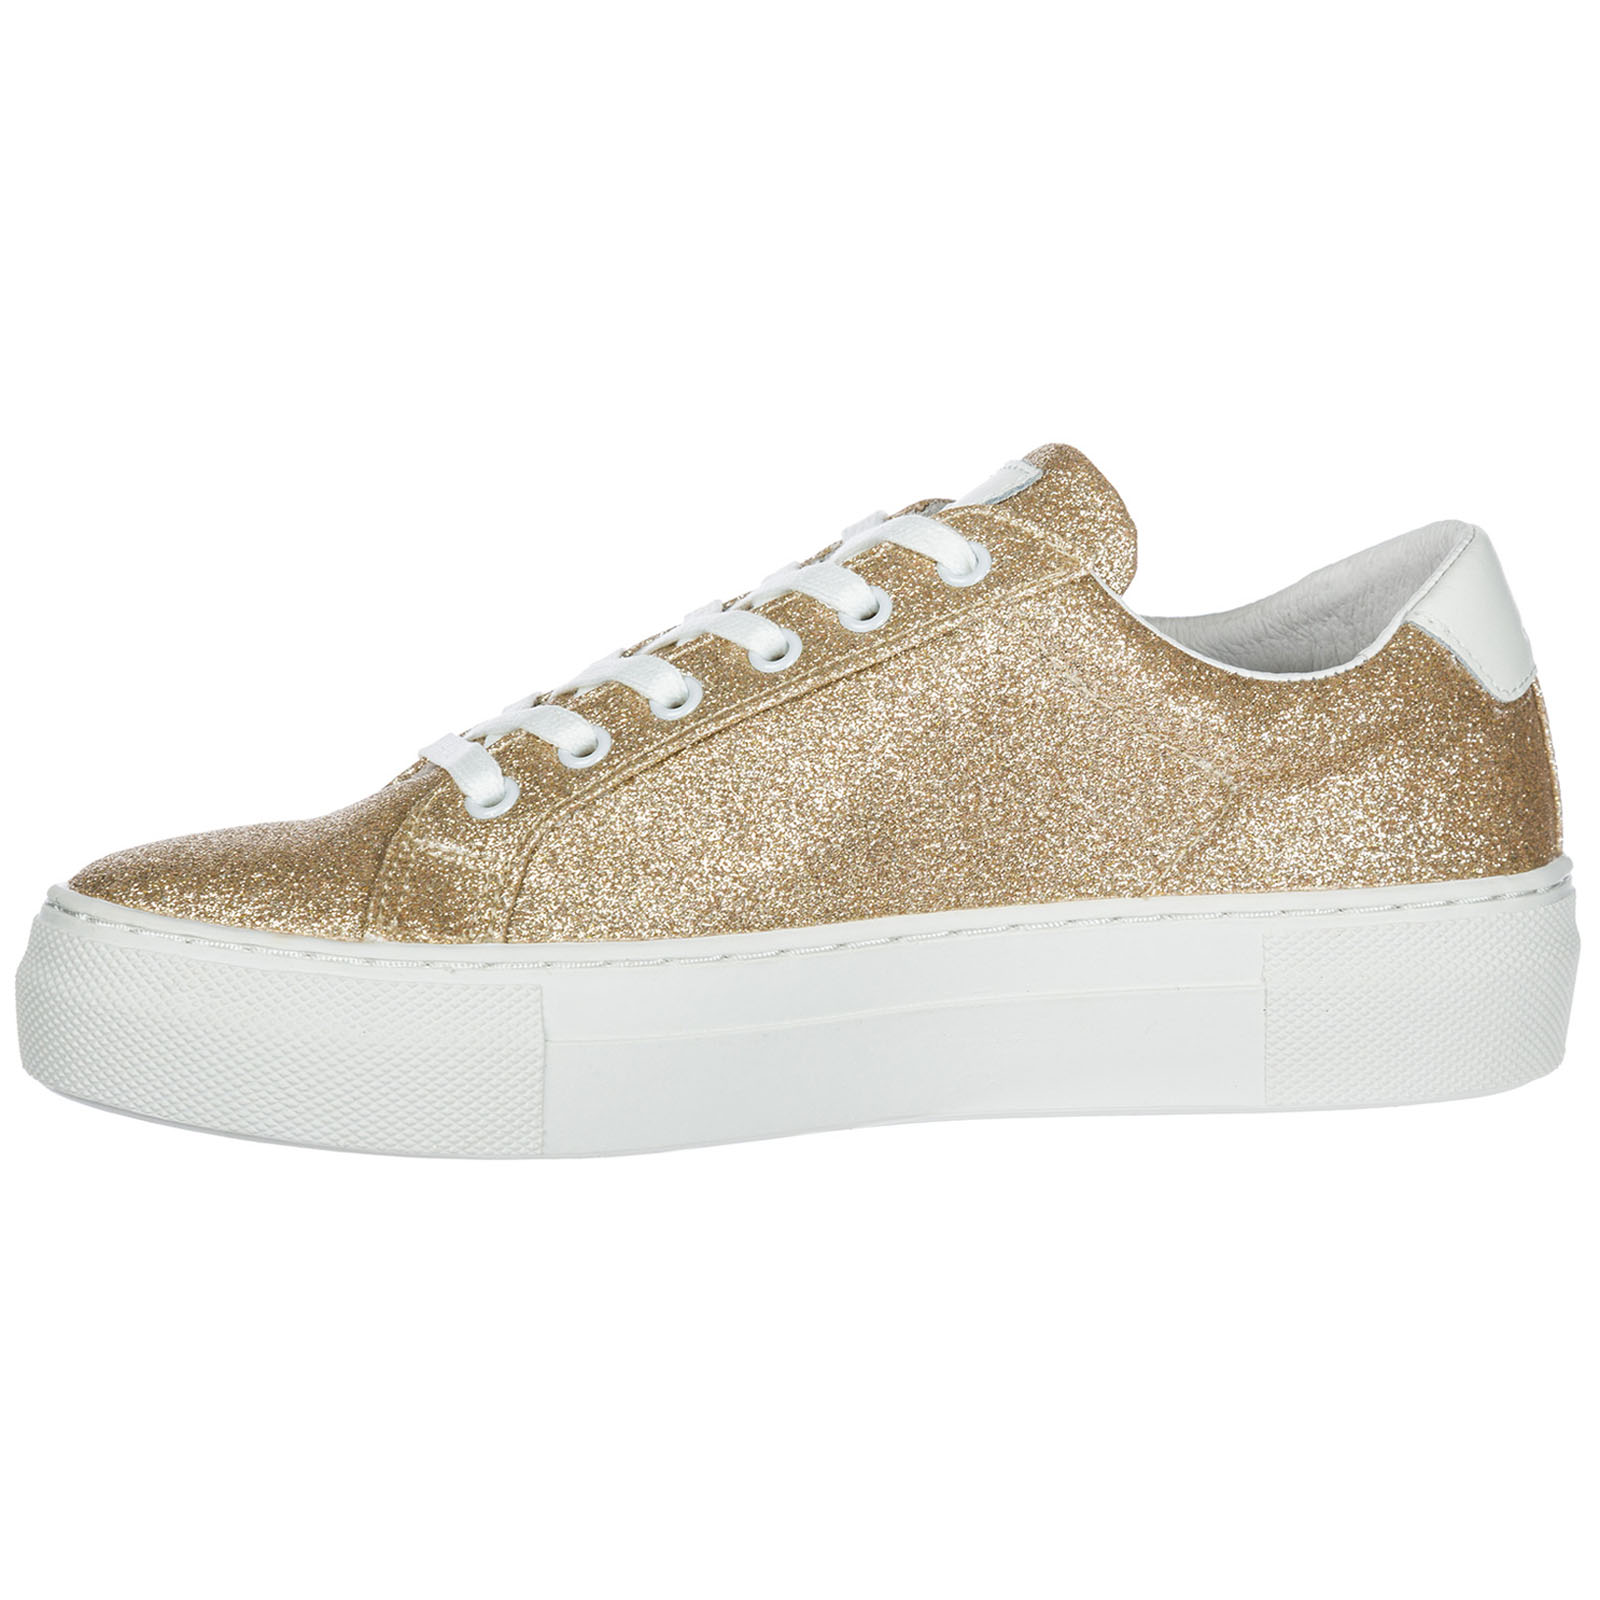 Women's shoes leather trainers sneakers victoria tropical